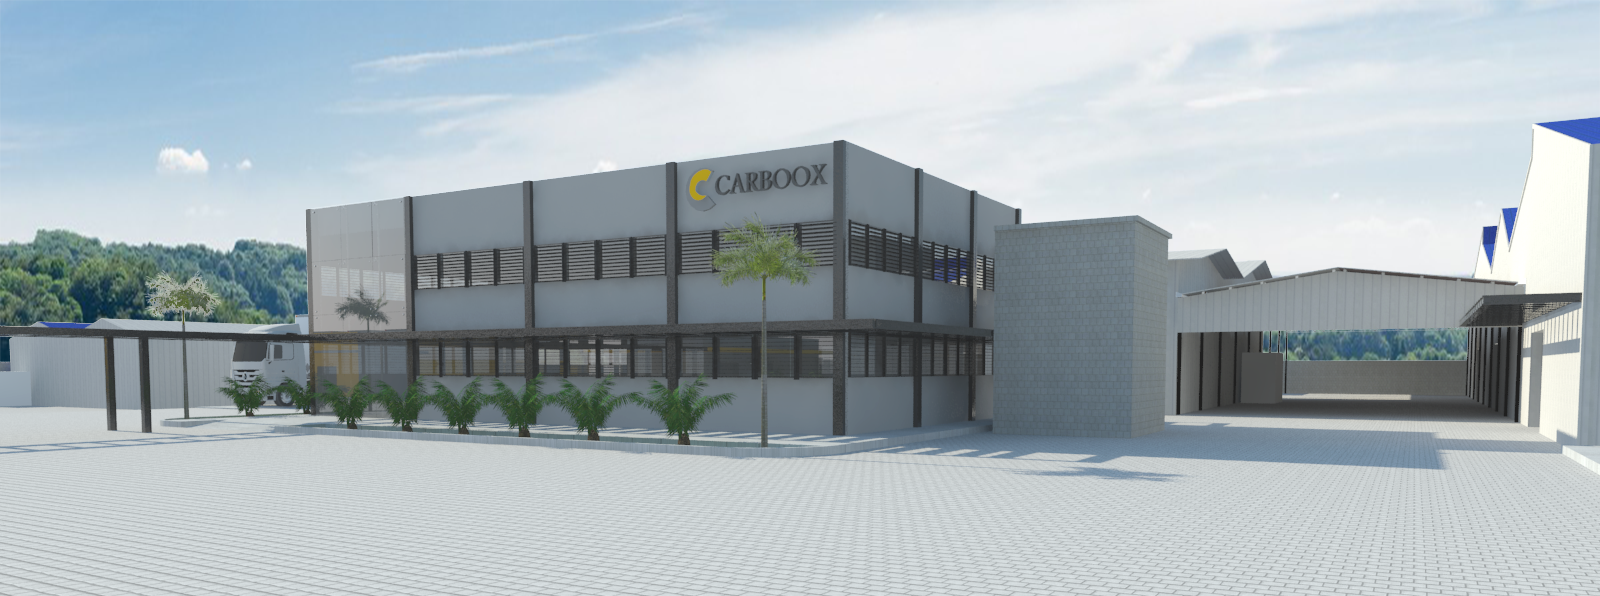 Carboox